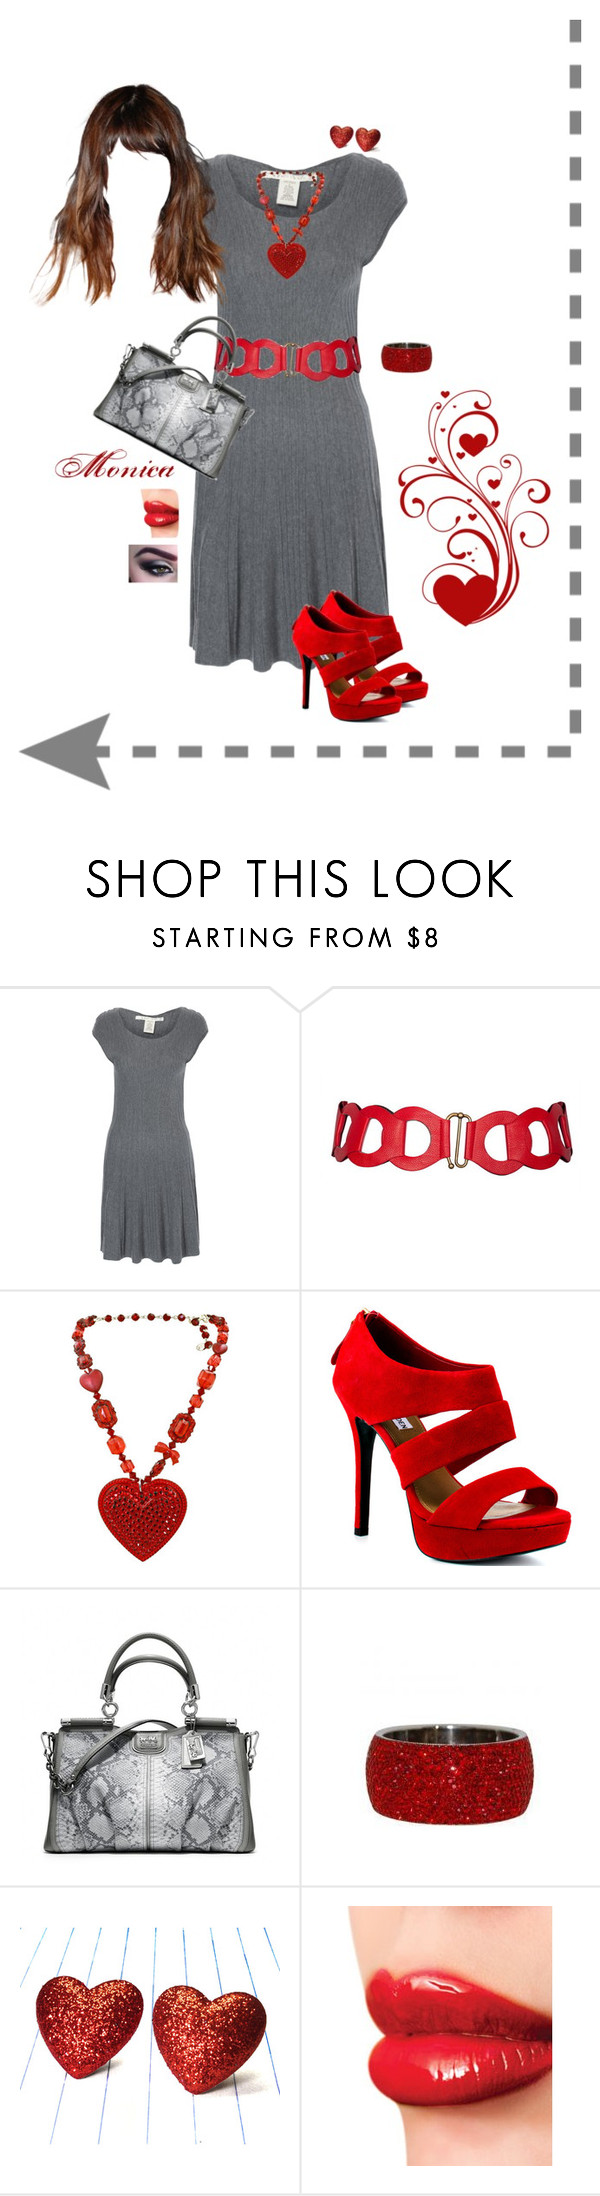 """Red & Grey - Classy"" by monicaprates ❤ liked on Polyvore featuring Max Studio, Tarina Tarantino, Steve Madden, Coach and NYX"